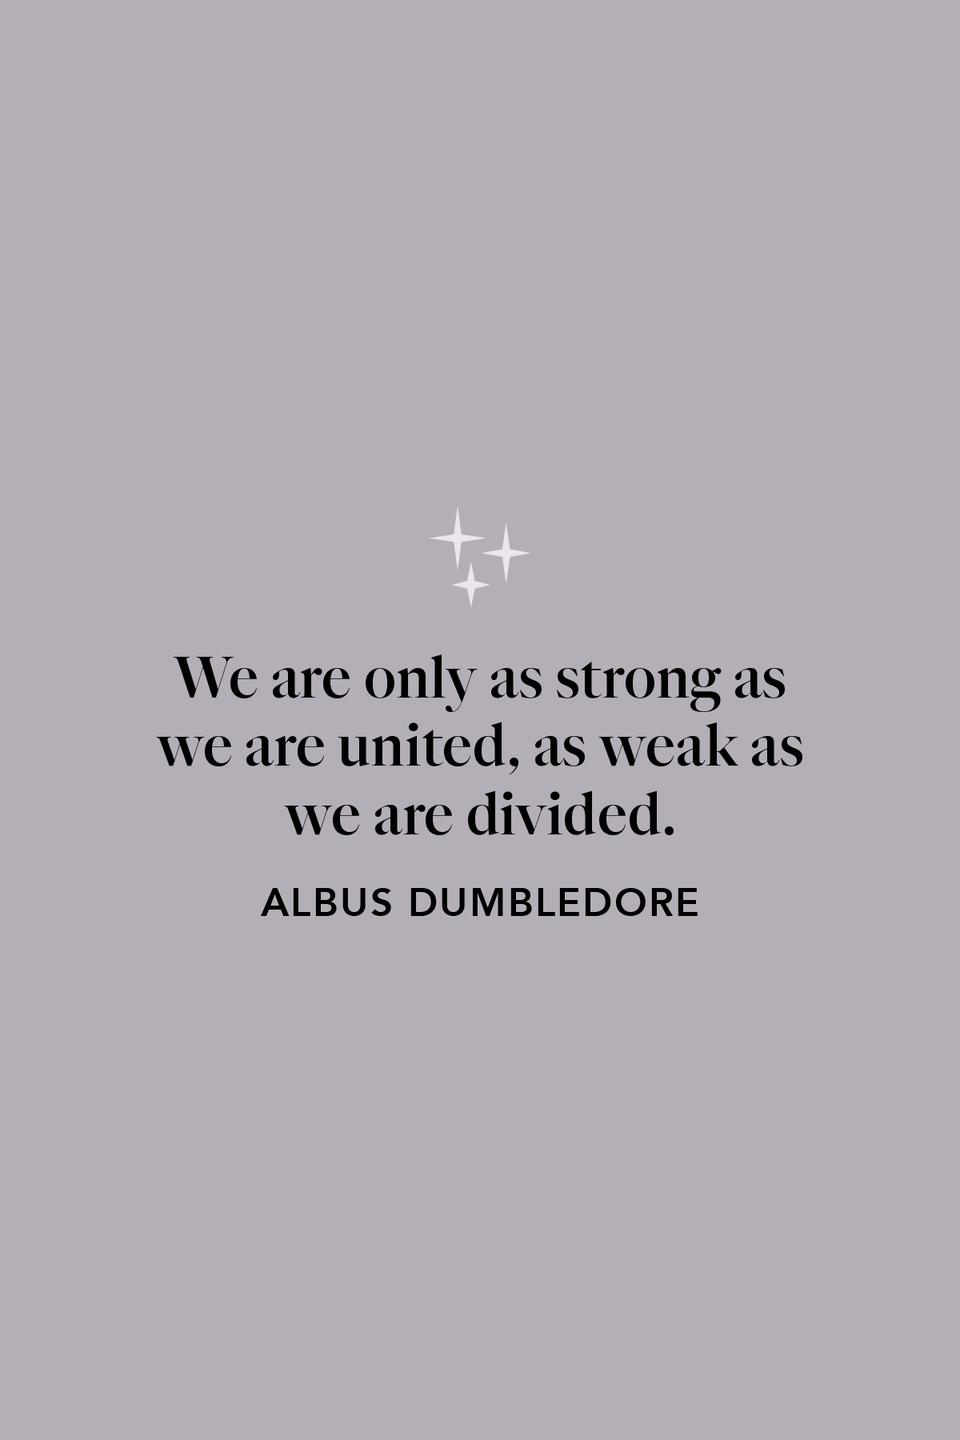 """<p>""""We are only as strong as we are united, as weak as we are divided."""" One of Dumbledore's most famous quotes comes from chapter 37 of <em>The Goblet of Fire</em>.</p>"""